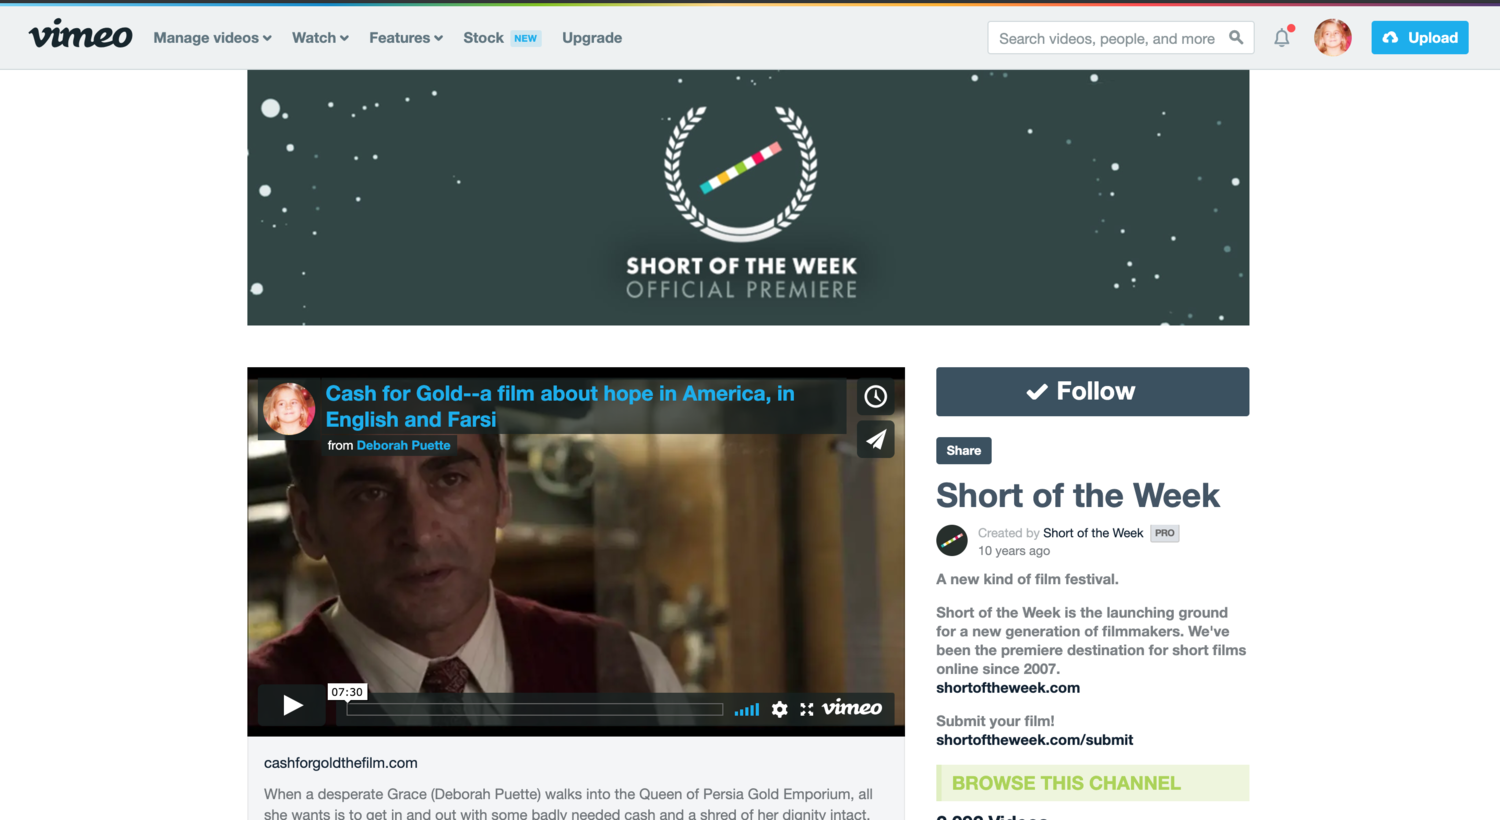 Cash for Gold SHORT OF THE WEEK on VIMEO!